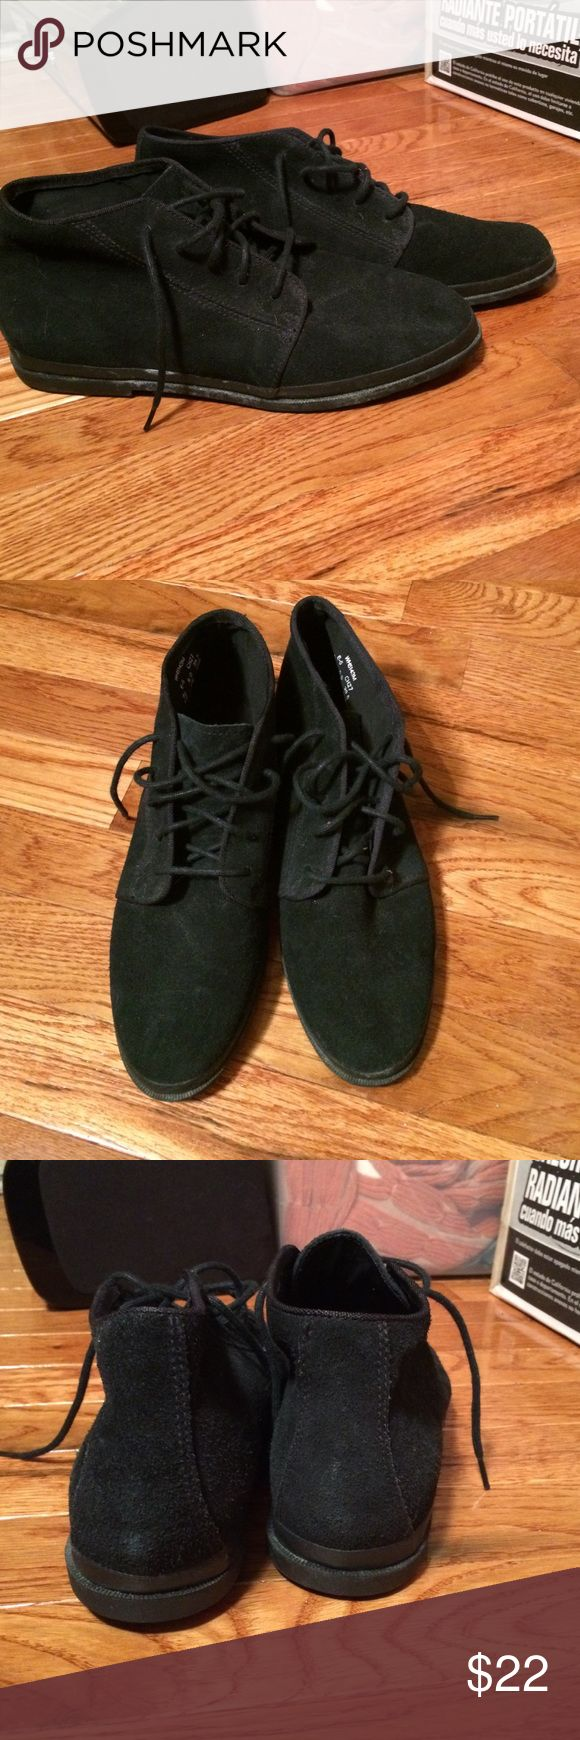 Vintage Black Keds Plain back, lace up. Size 8.5. Suede or suede like. Some minor wear from storage. Keds Shoes Ankle Boots & Booties